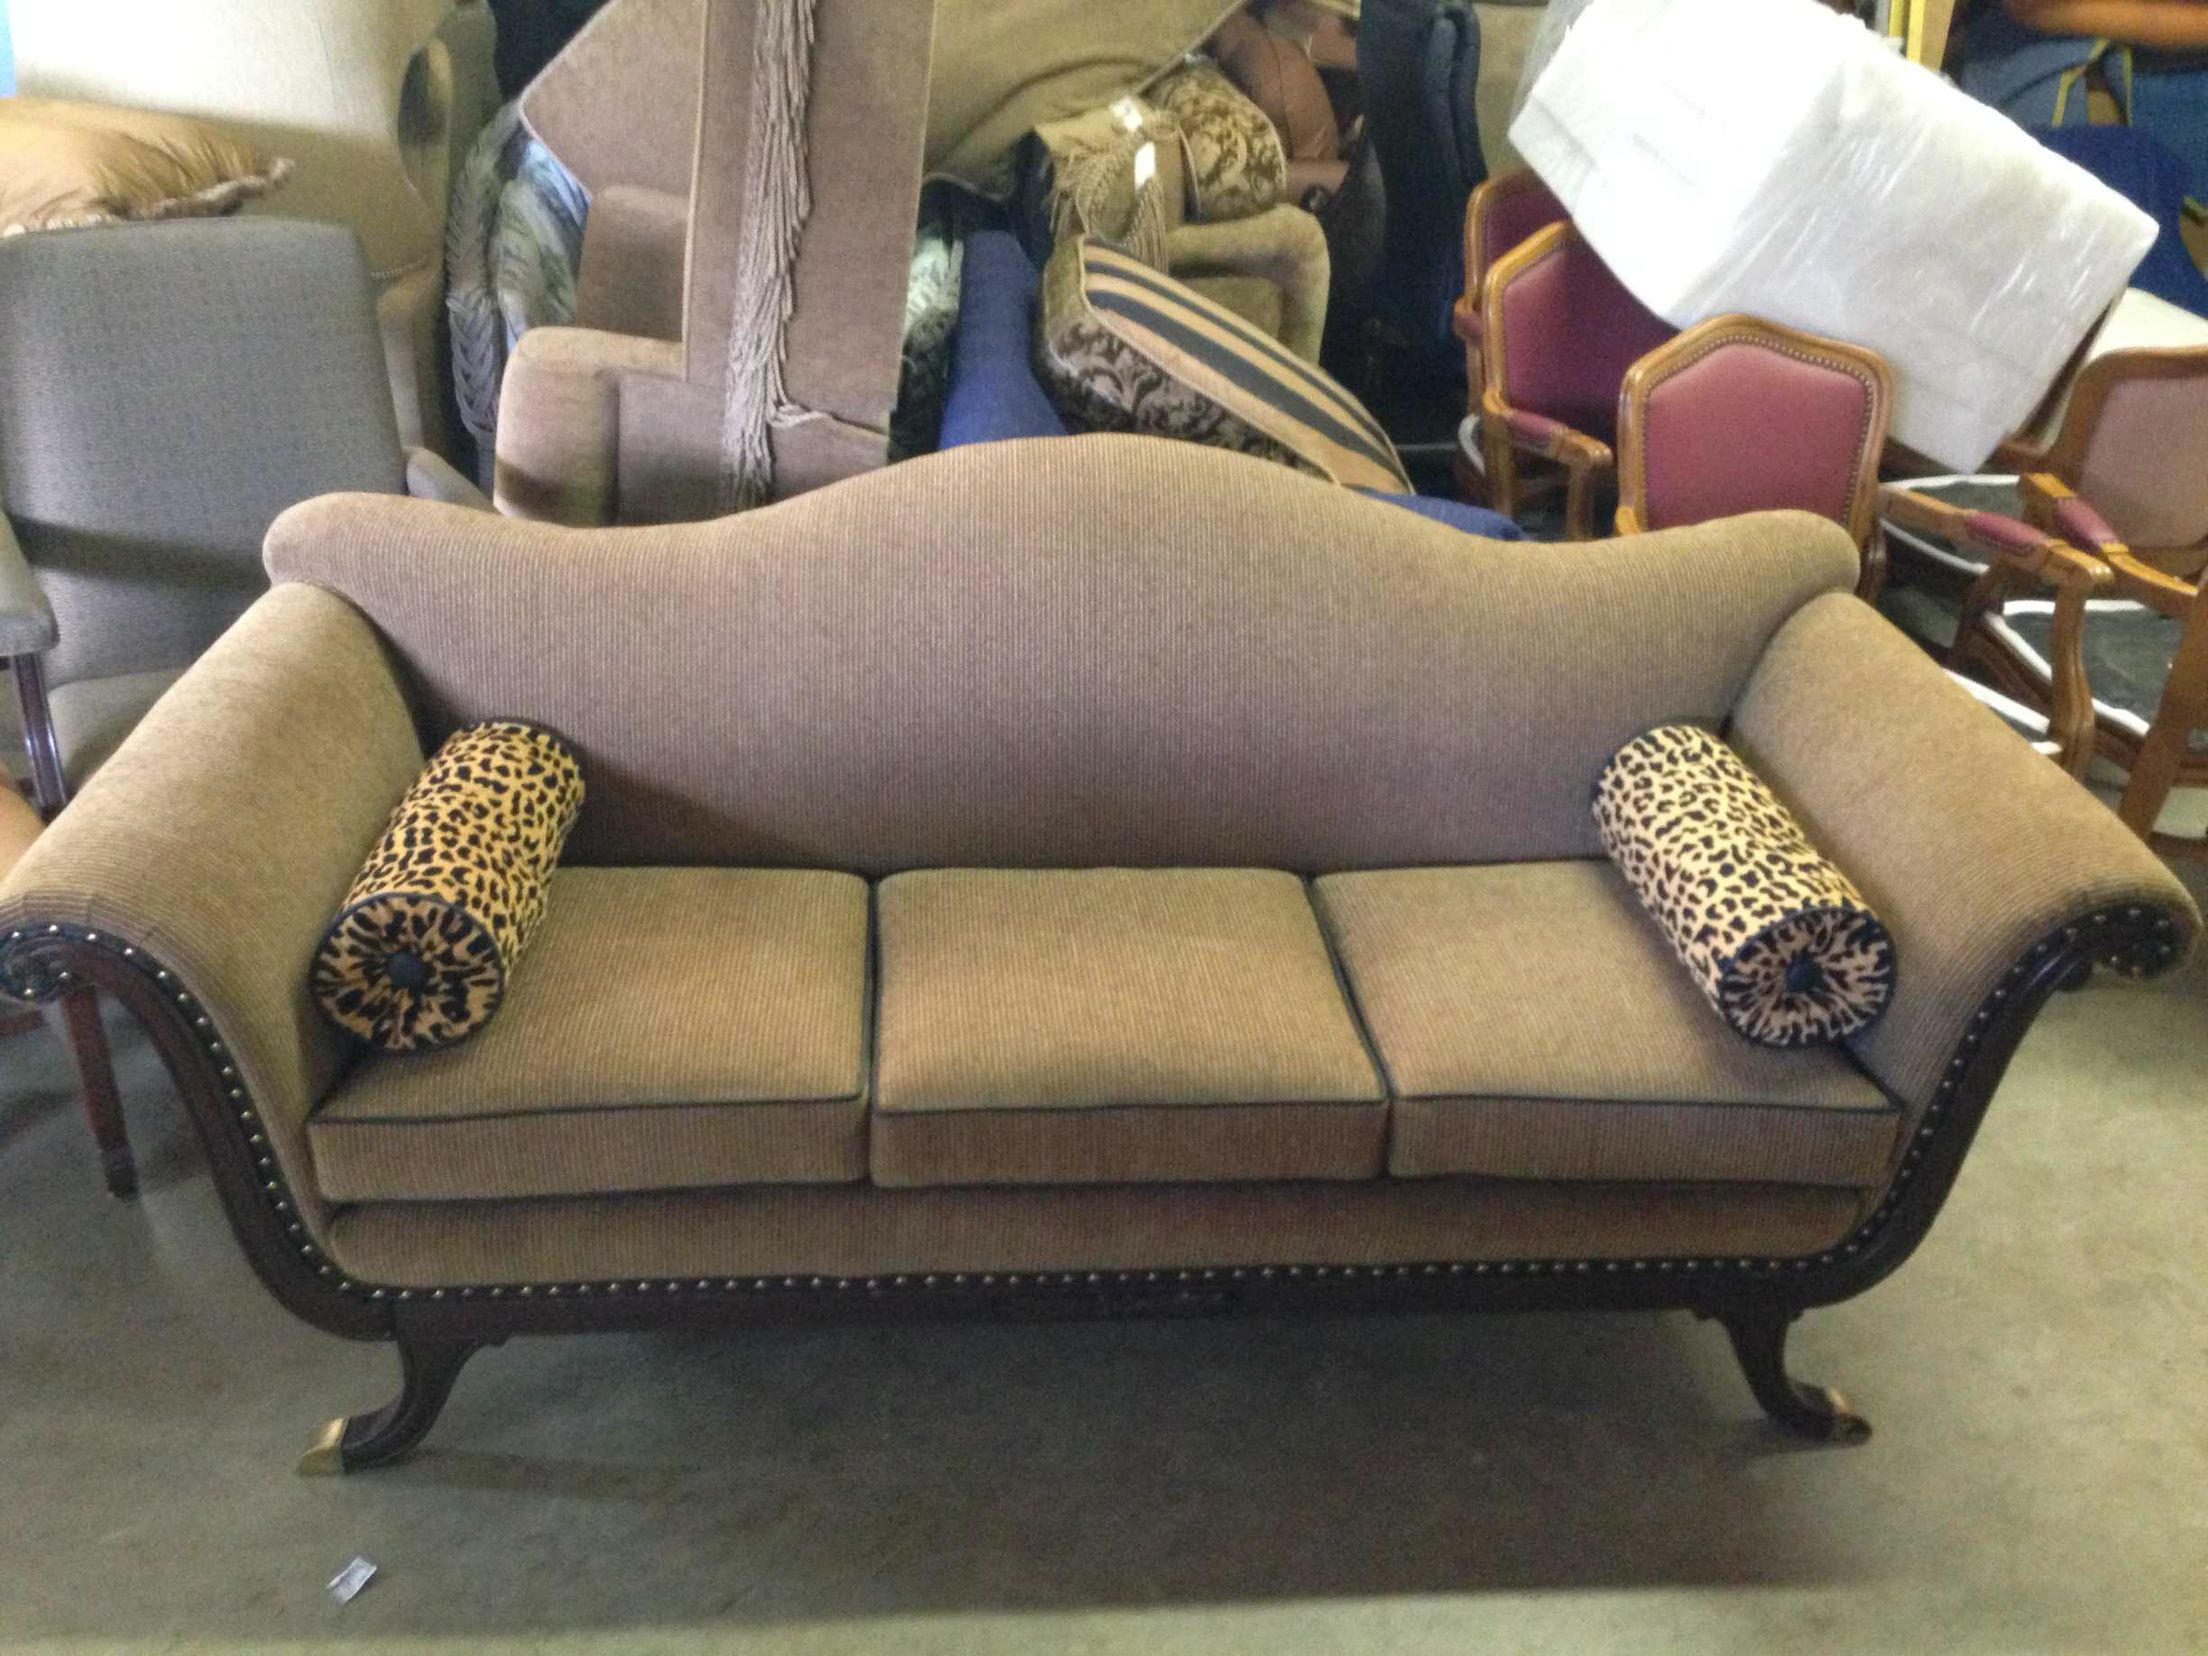 Duncan Phyfe Sofa pletely restored with new Kravet upholstery